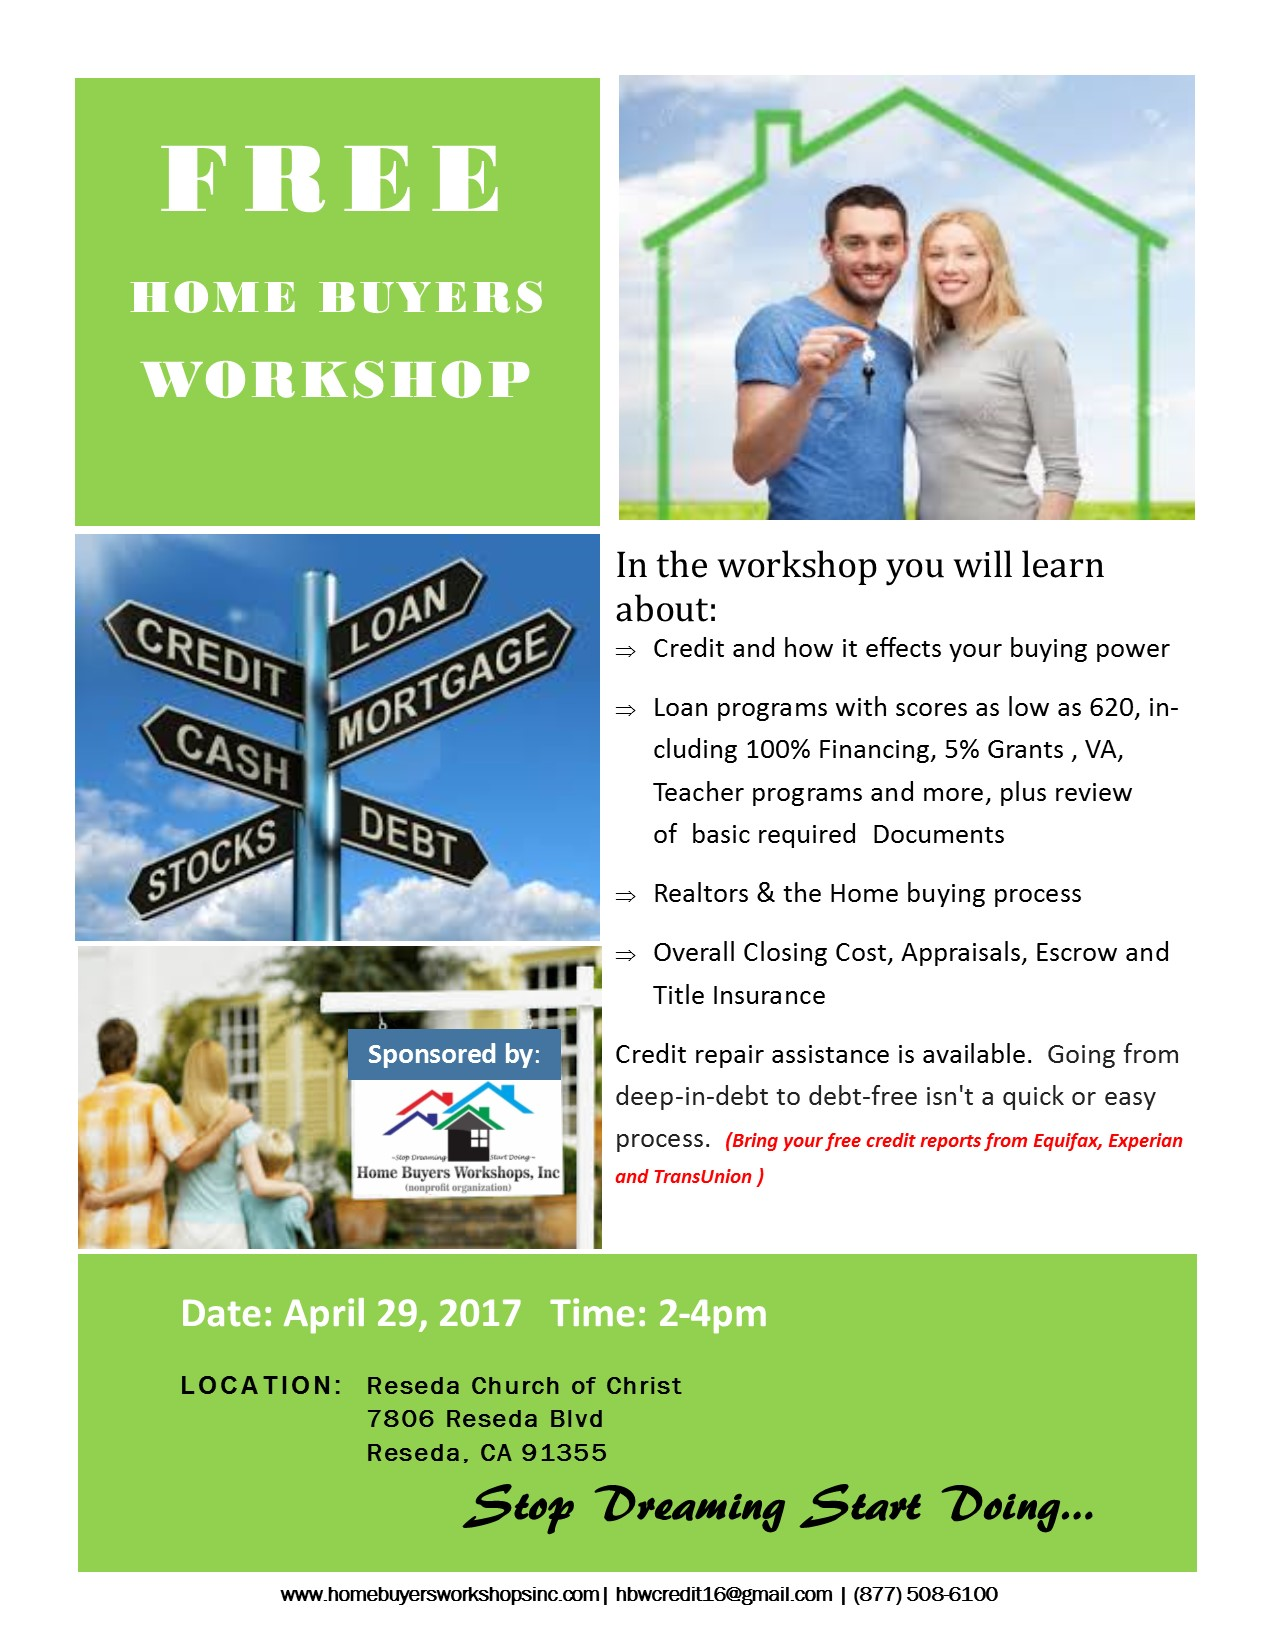 free home buyers workshops tickets sat apr 29 2017 at 2 00 pm eventbrite. Black Bedroom Furniture Sets. Home Design Ideas